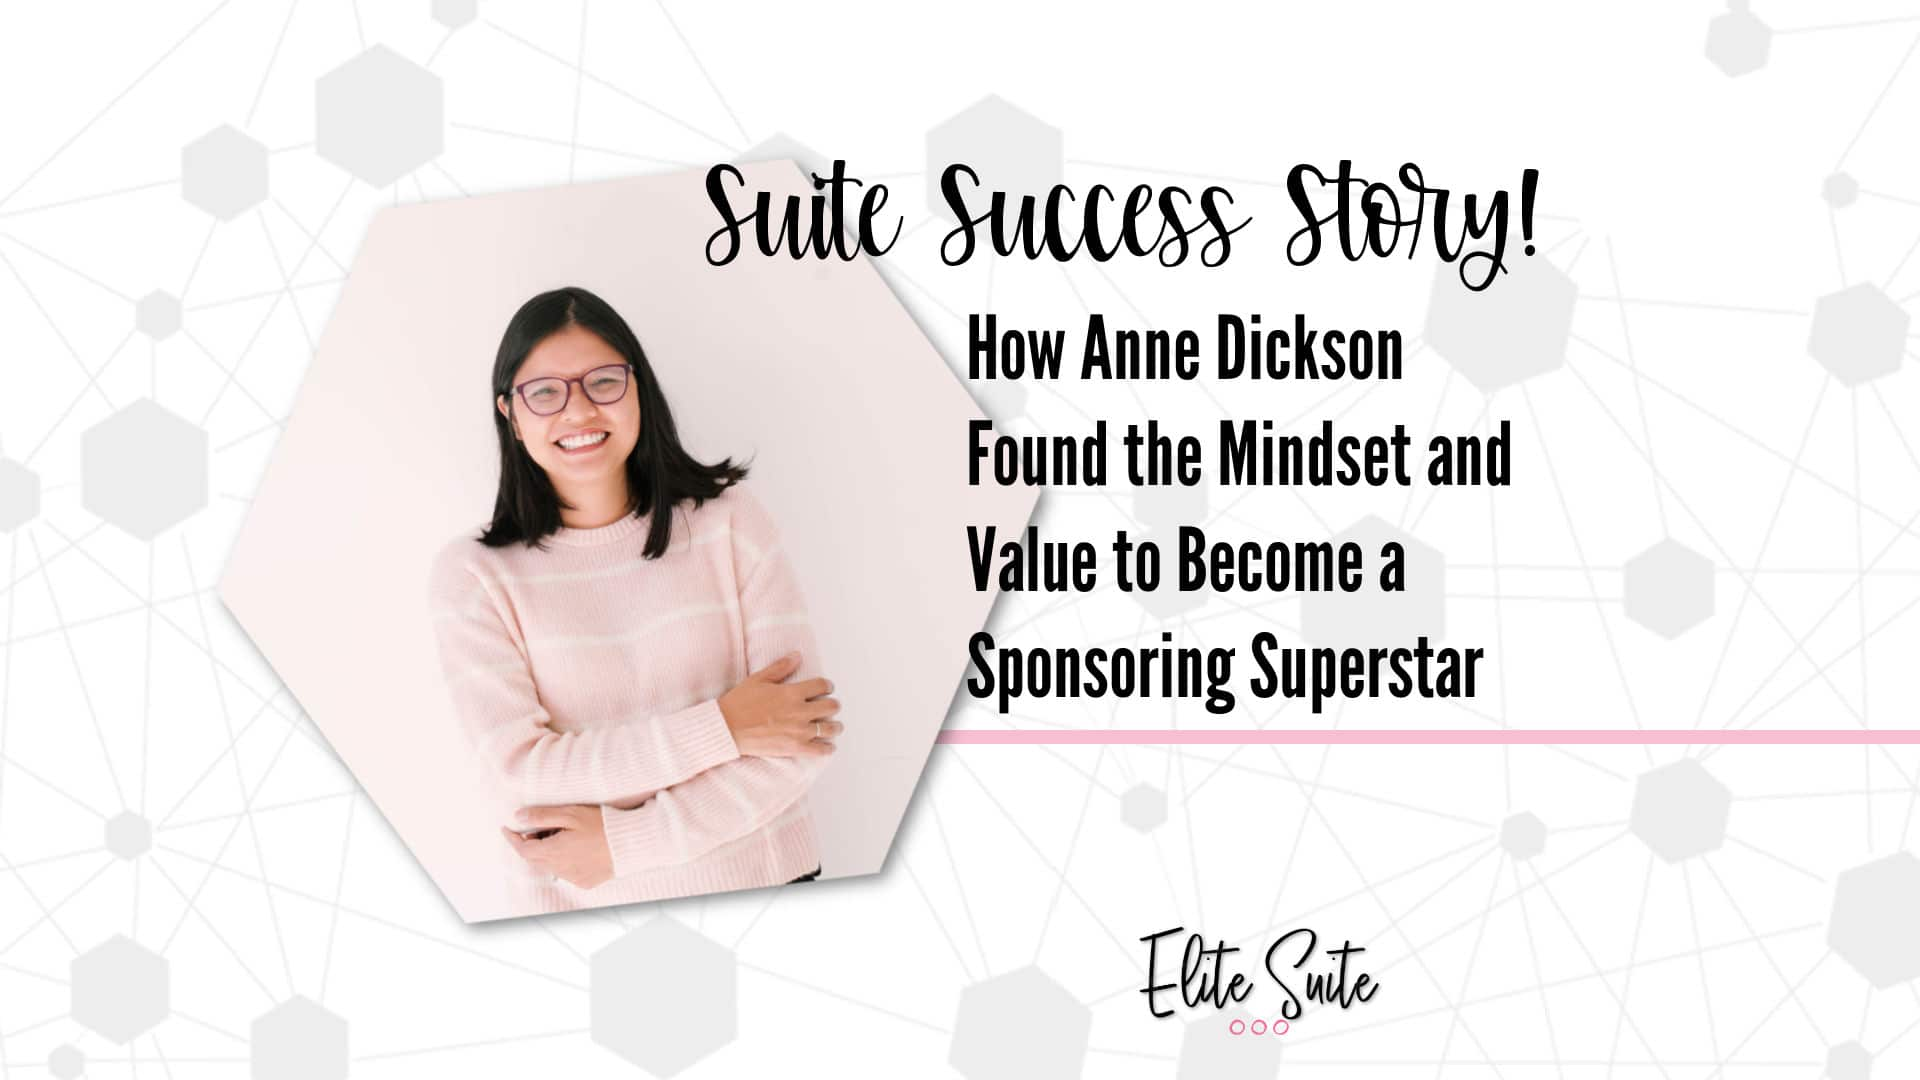 Suite Success Story- Becoming a Sponsoring Superstar Masterclass Title Overlay